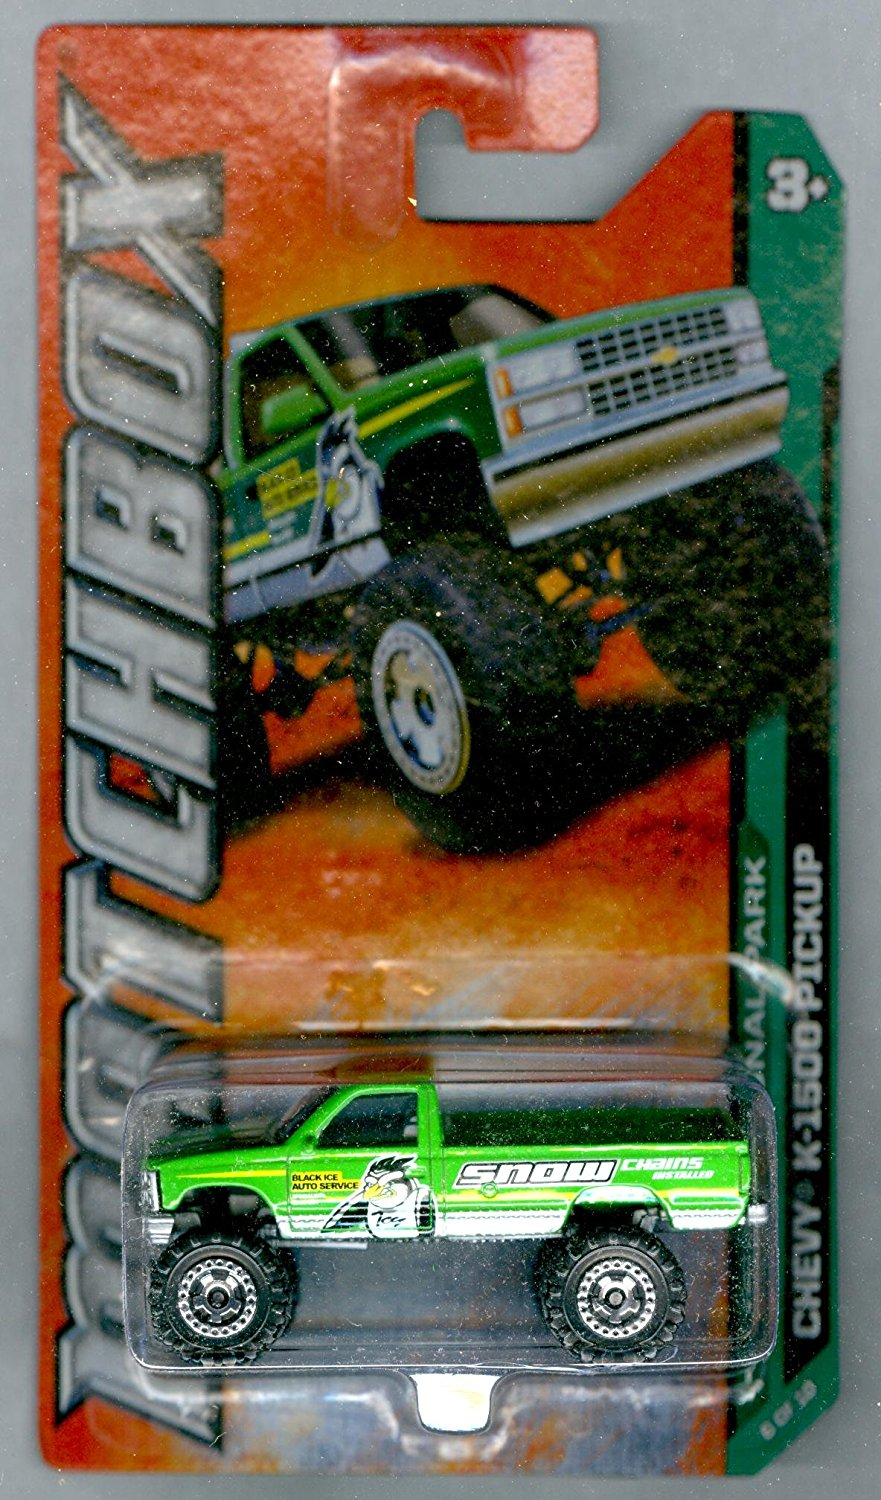 2012-116 MBX National Park Chevy K-1500 Pickup GREEN 1:64 Scale, 2012 National Park #6 of... by